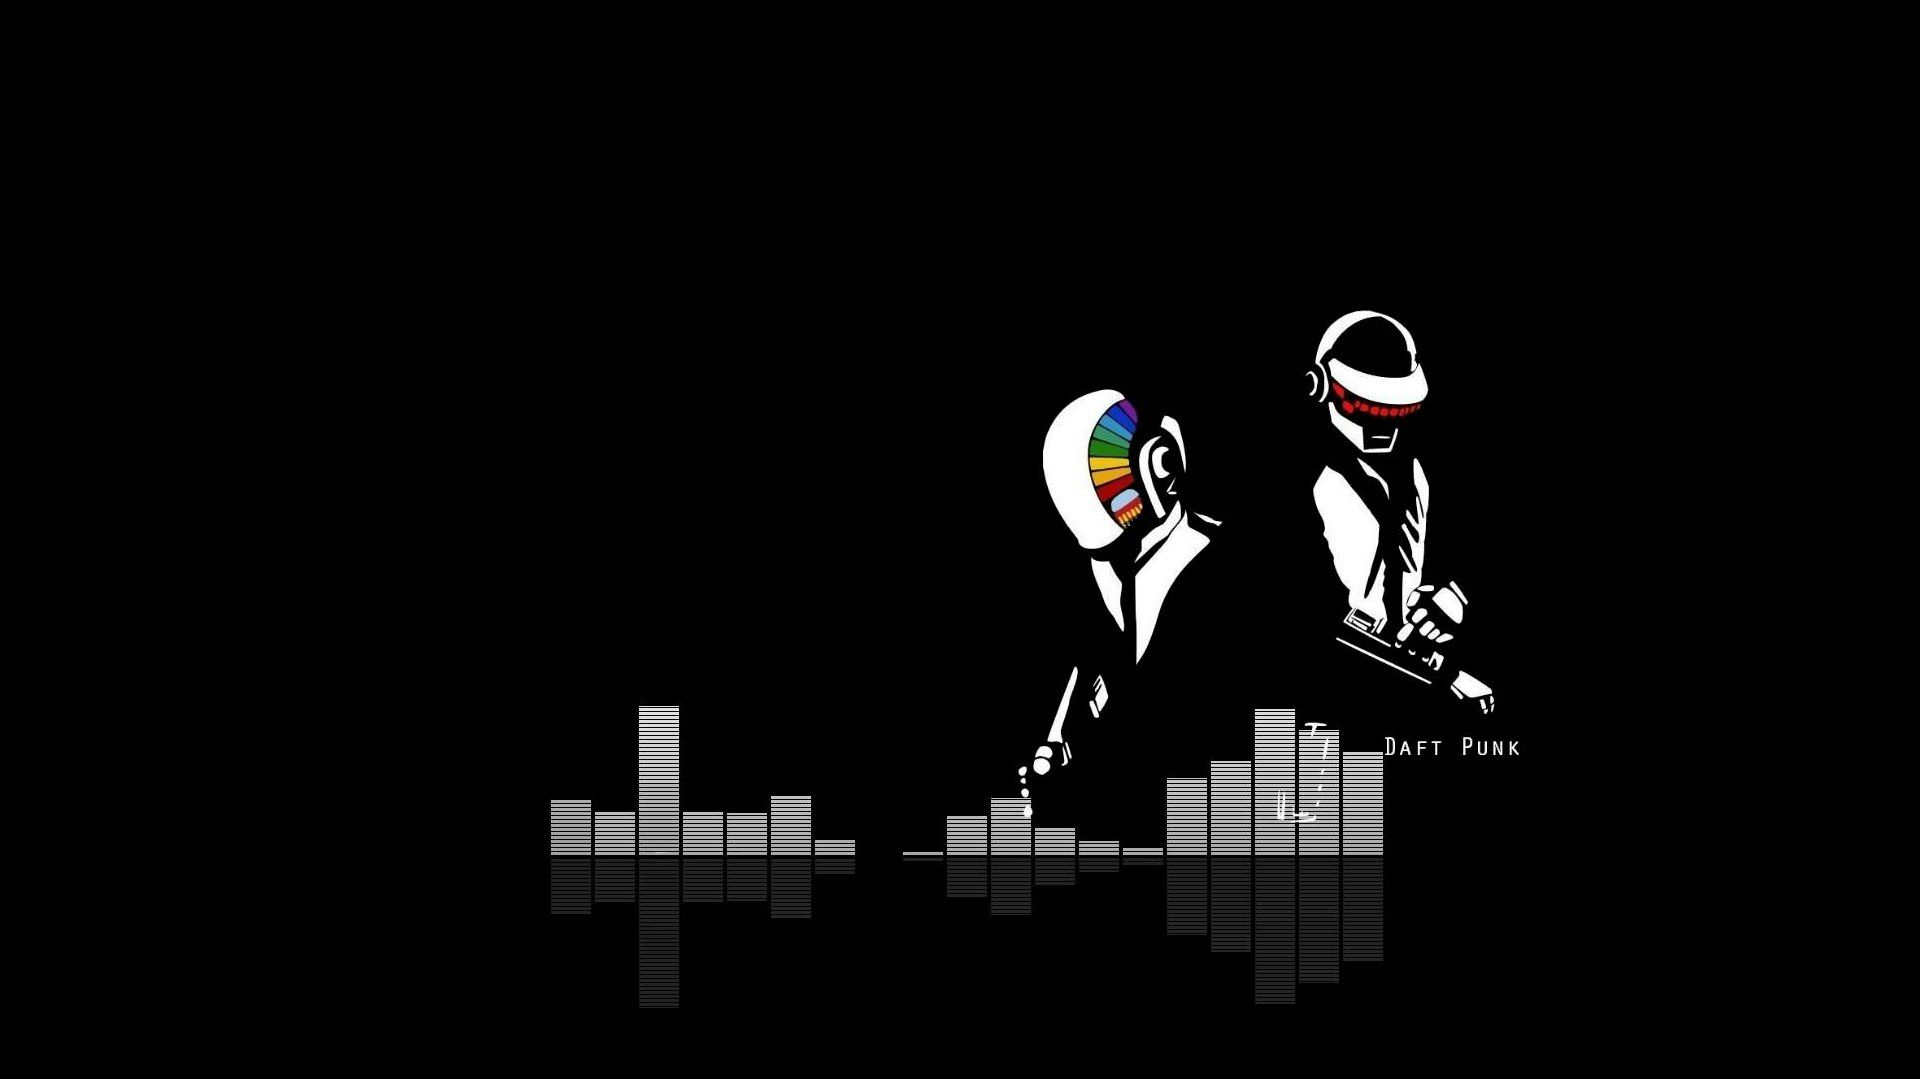 Always loved this wallpaper 1920x1080 | Daft punk, Punk ...